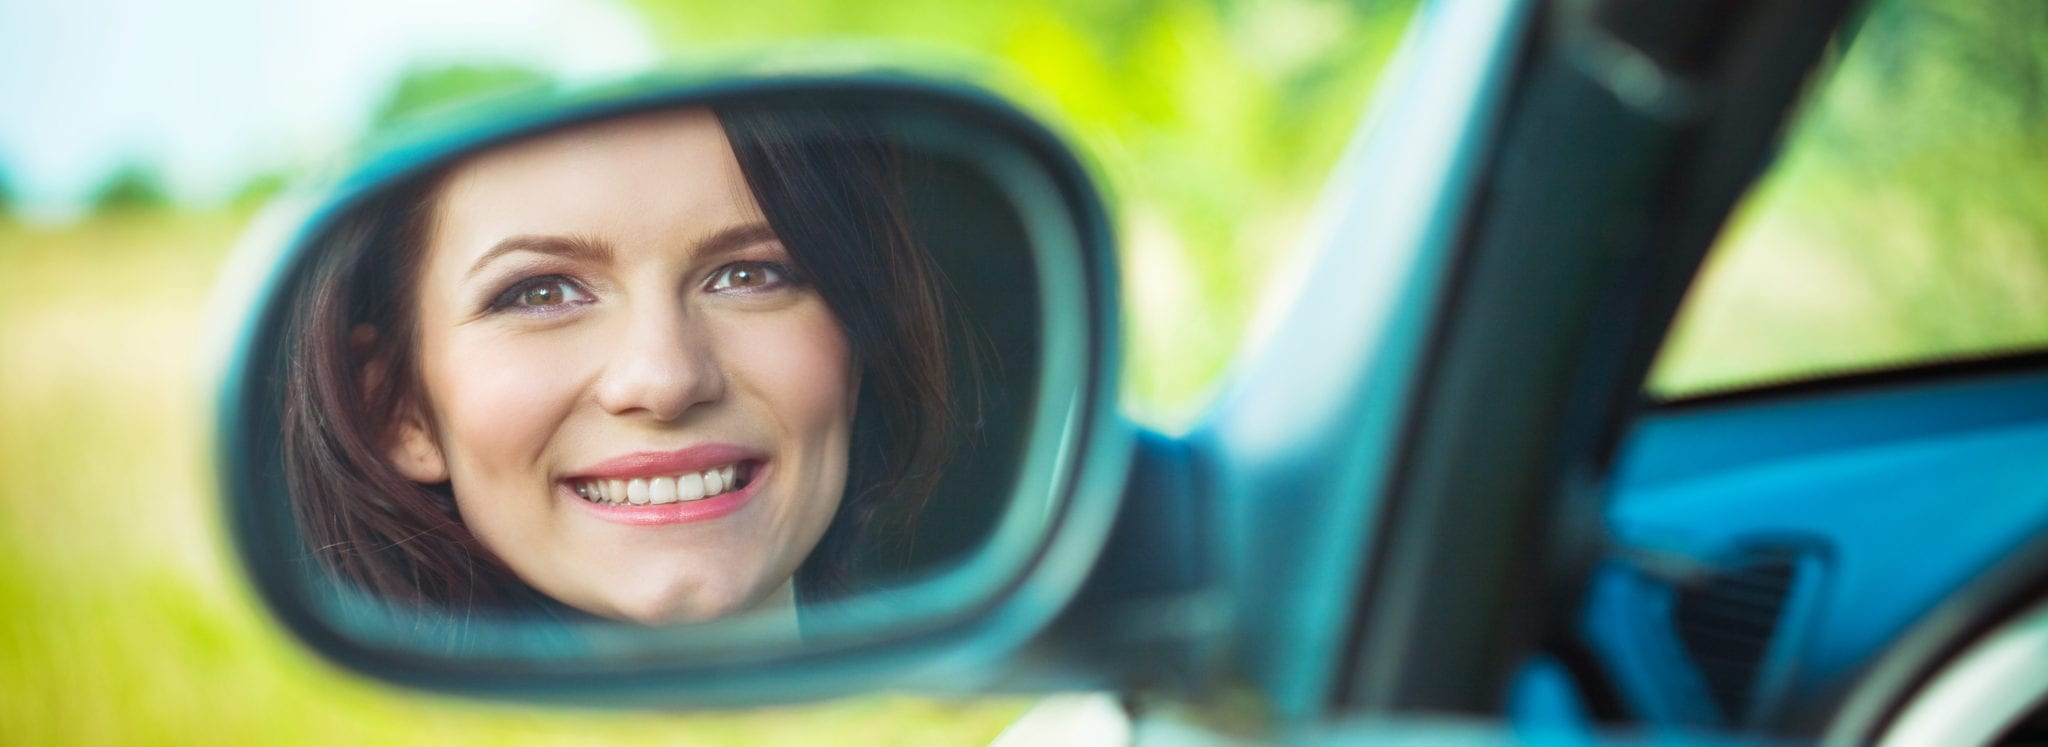 Woman looking in drivers side mirror